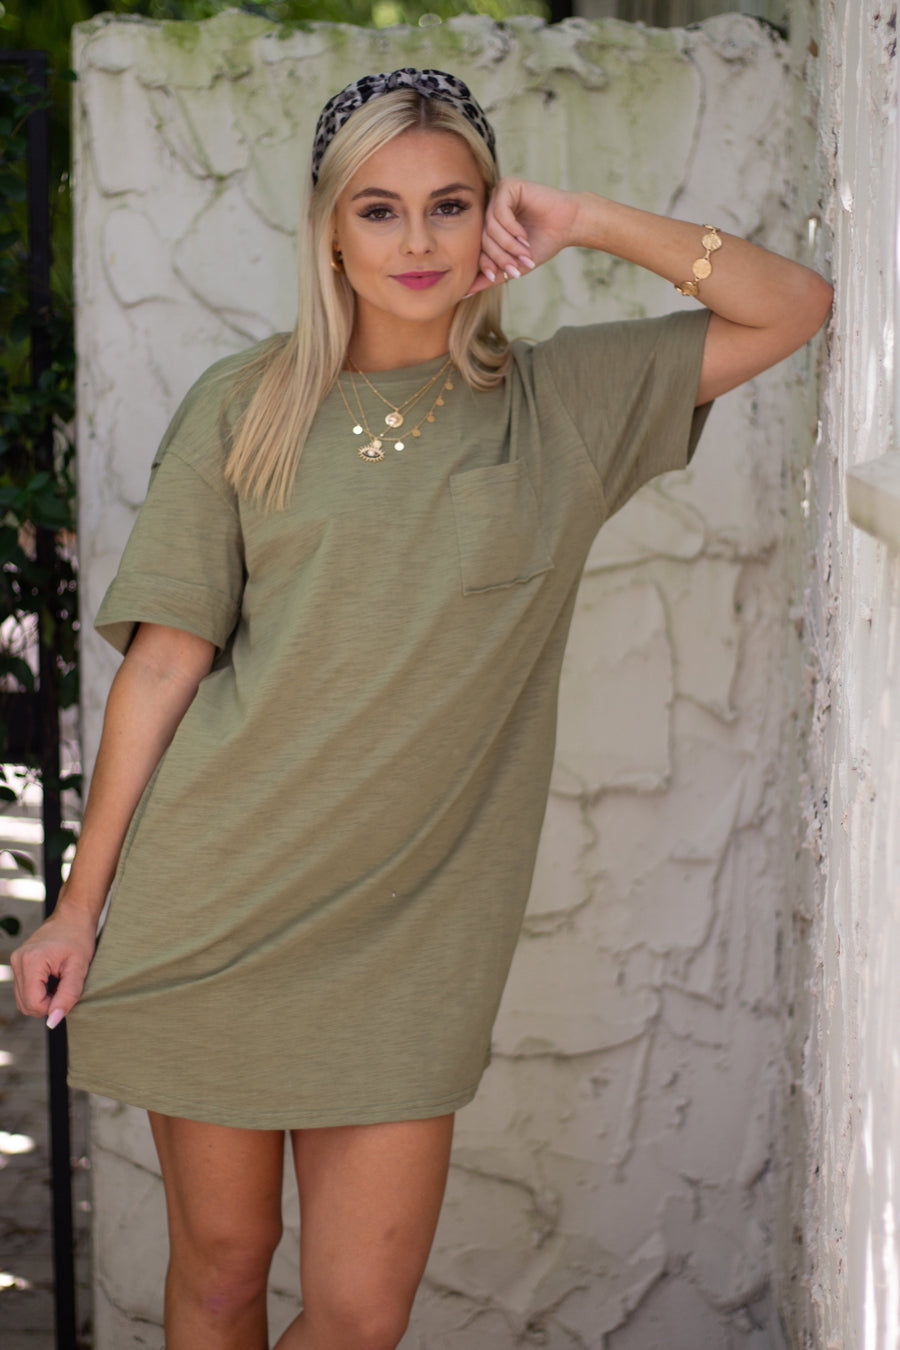 This heathered and lightweight dress has short sleeves that attach to a high rounded neckline into a t-shirt style silhouette with a front pocket at the chest and pockets.